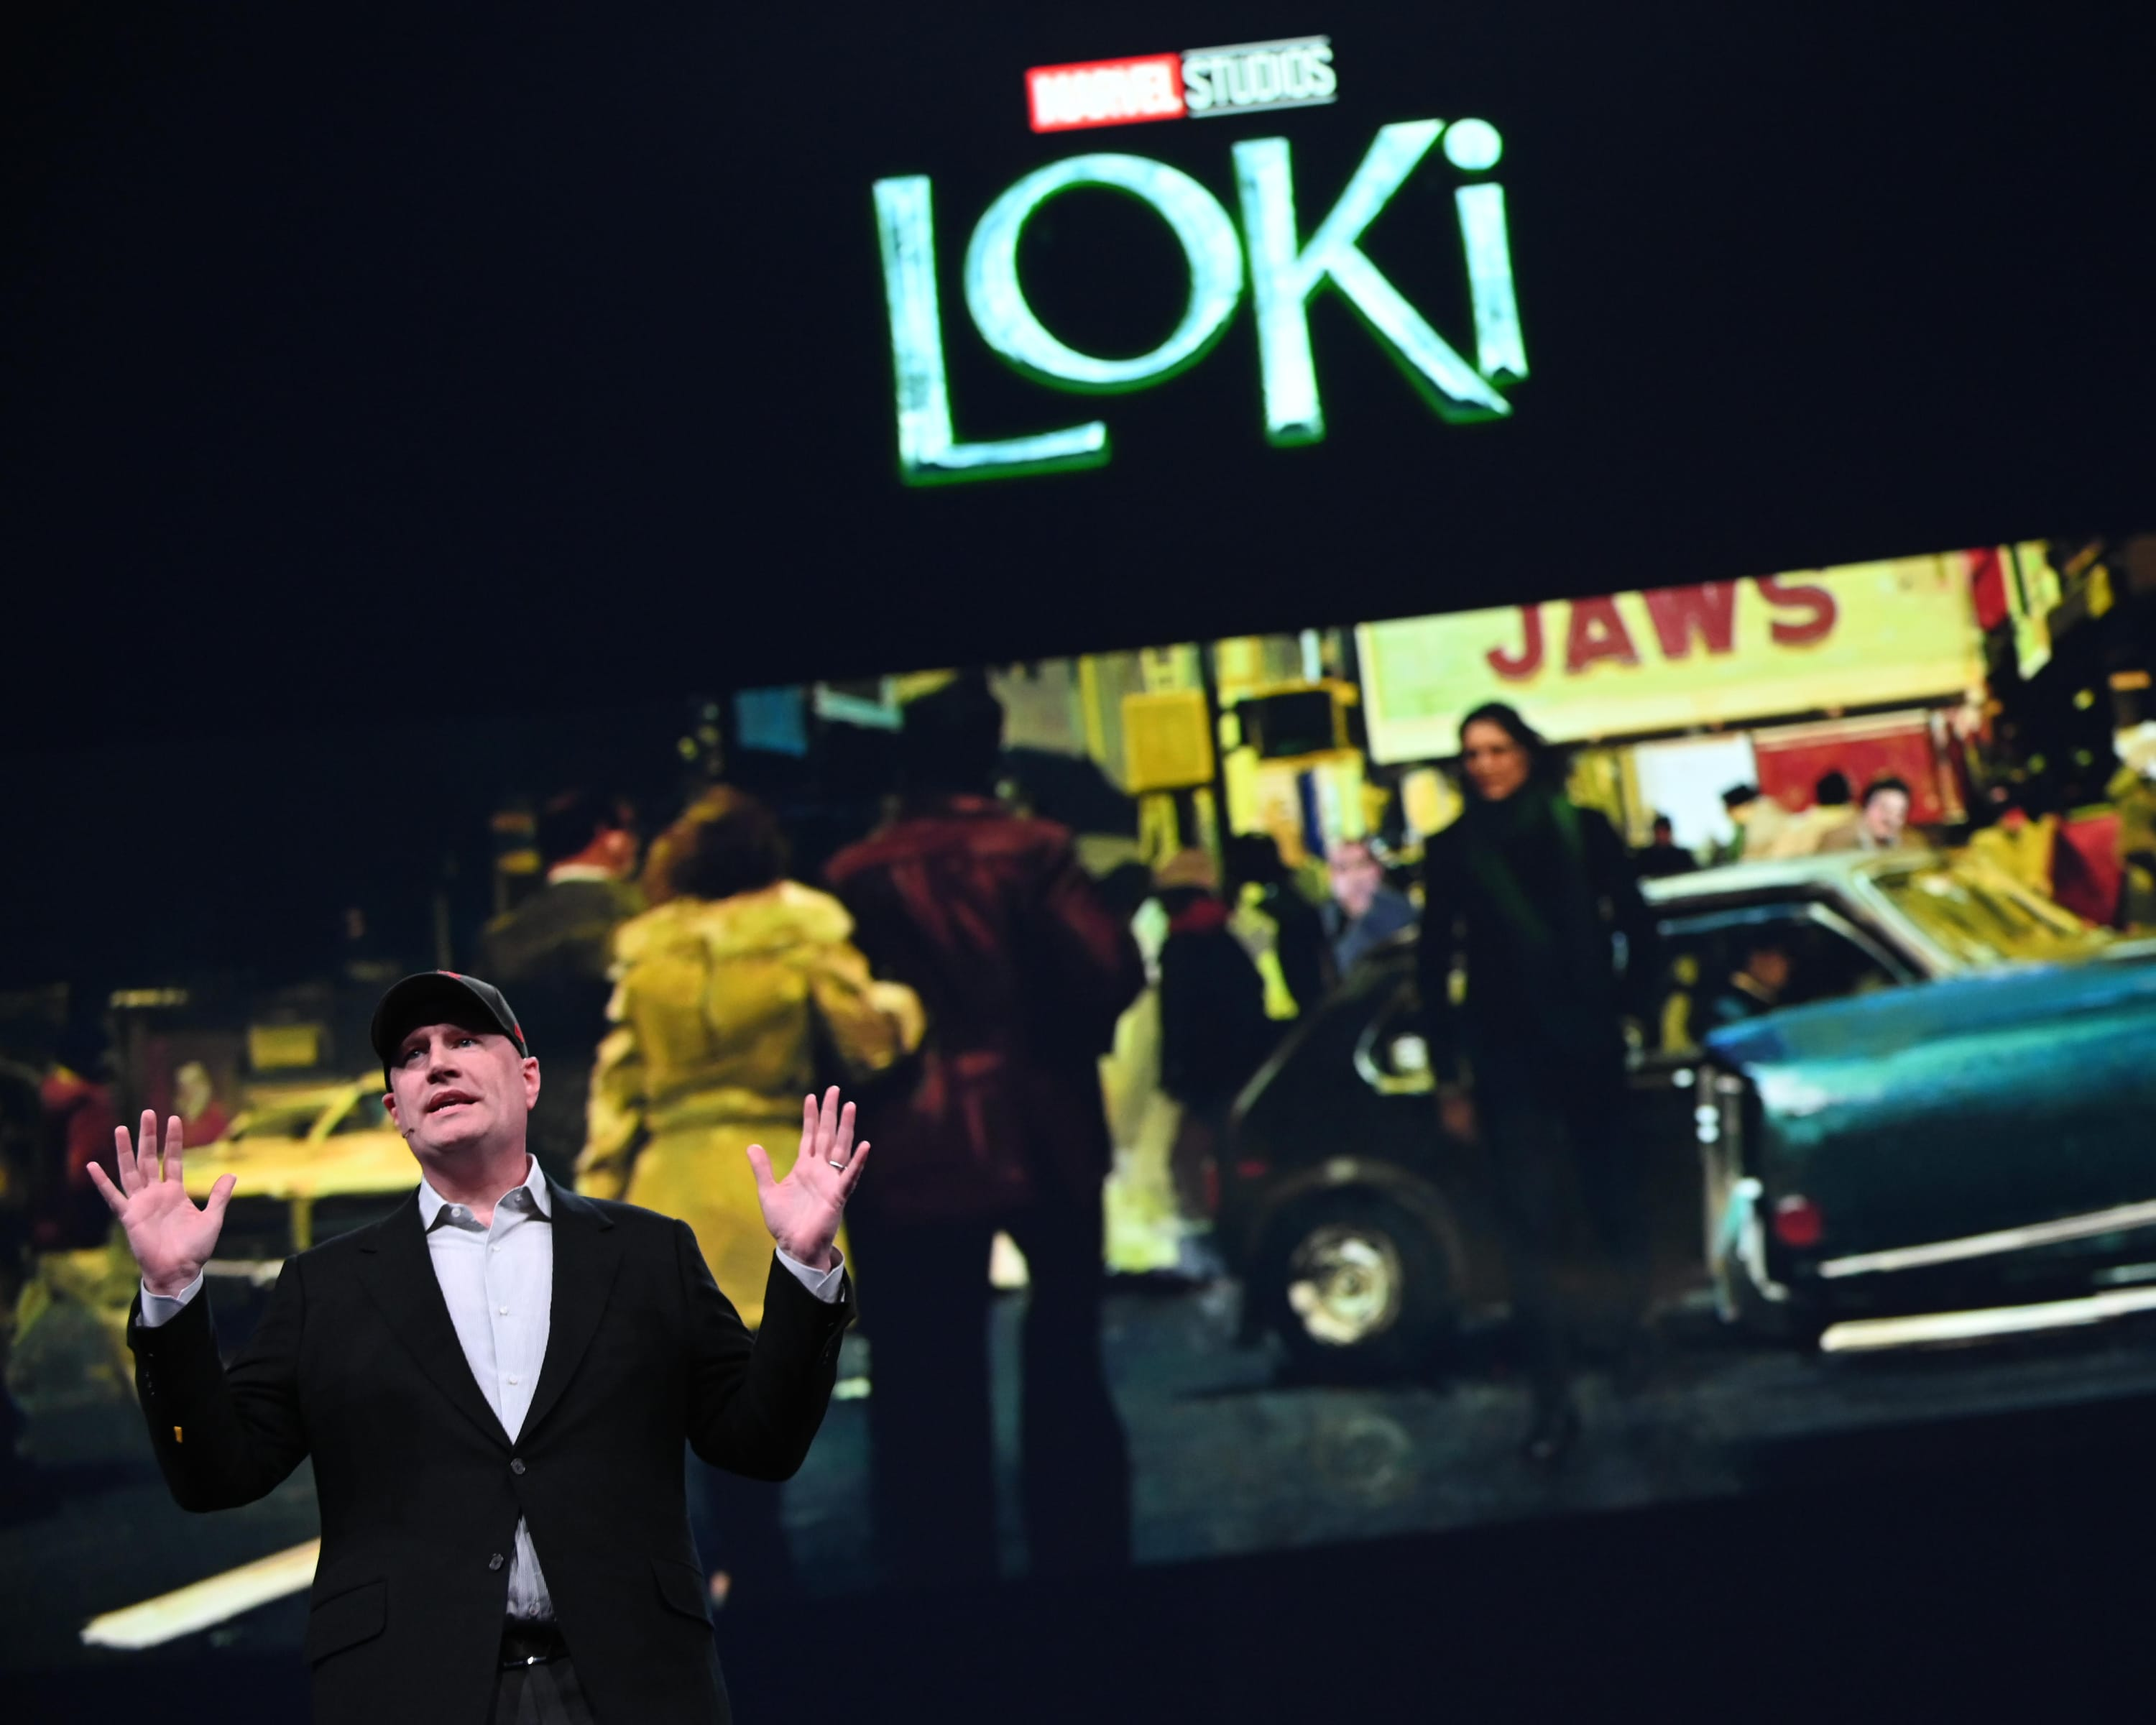 Marvel's Loki: First Look at Tom Hiddleston's Disney+ Series